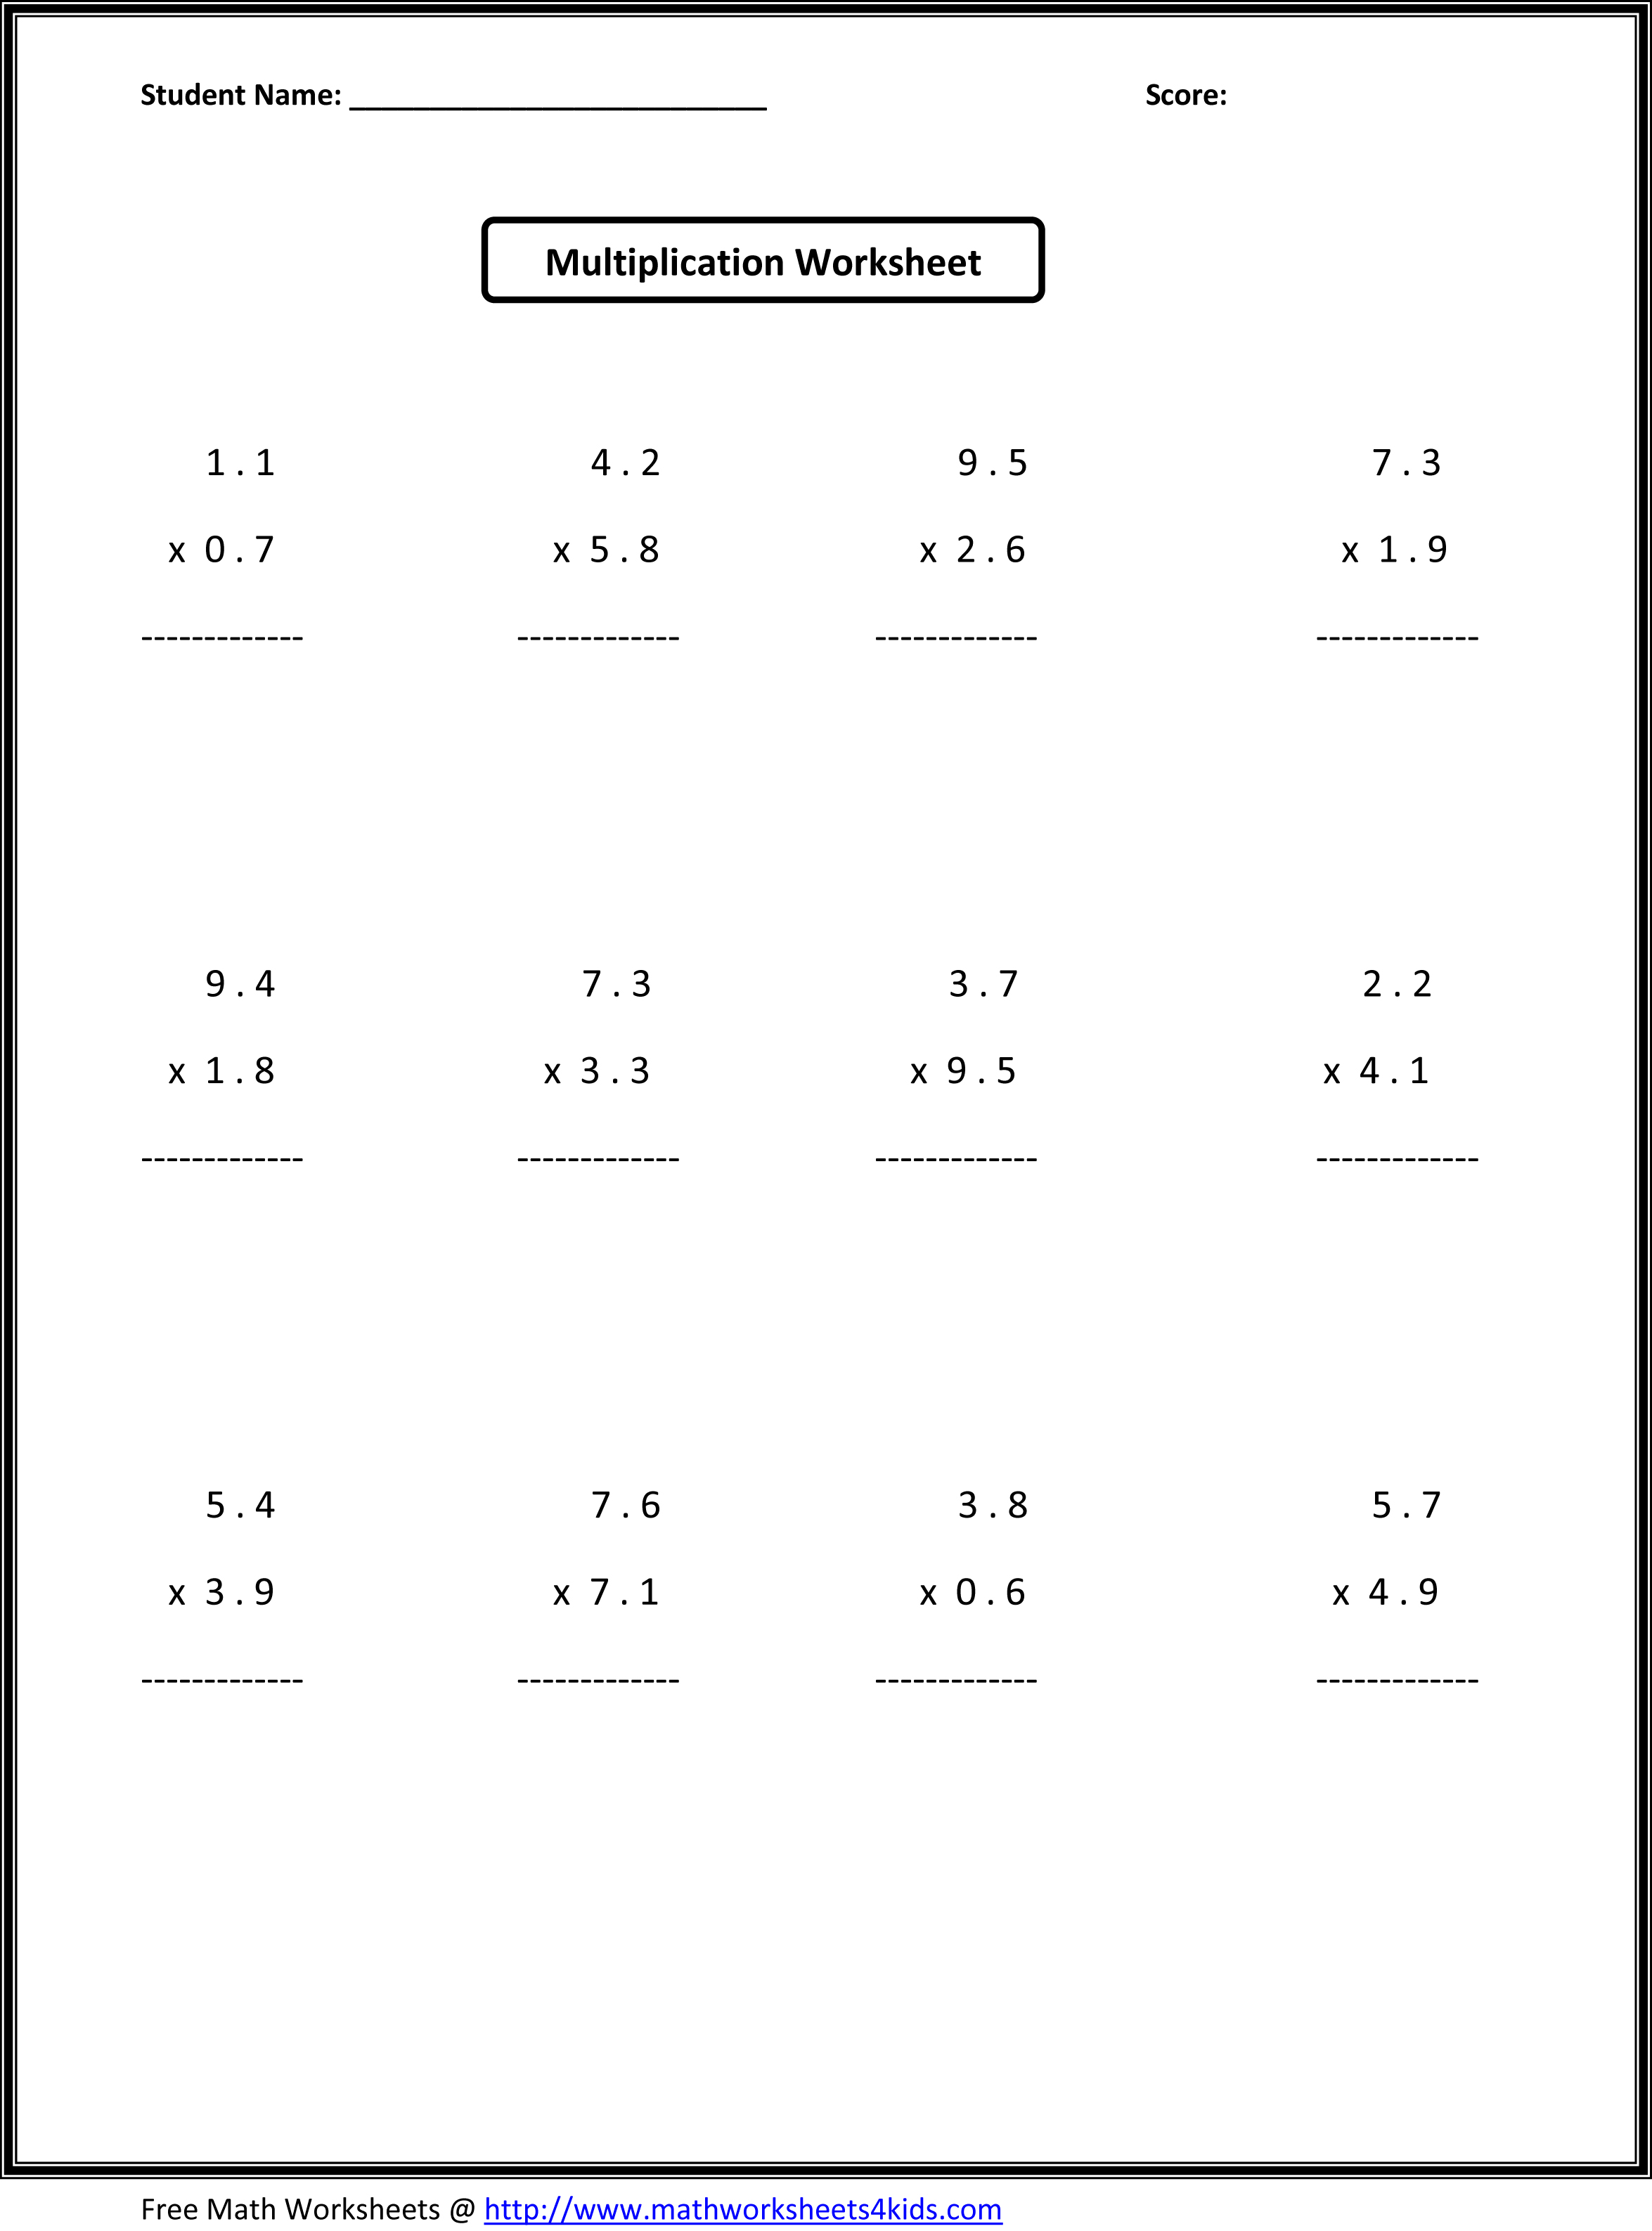 Free Worksheet Geometry 7th Grade Worksheets seventh grade geometry mathematics formula 8th staar 2013 7th math worksheets curriculum based